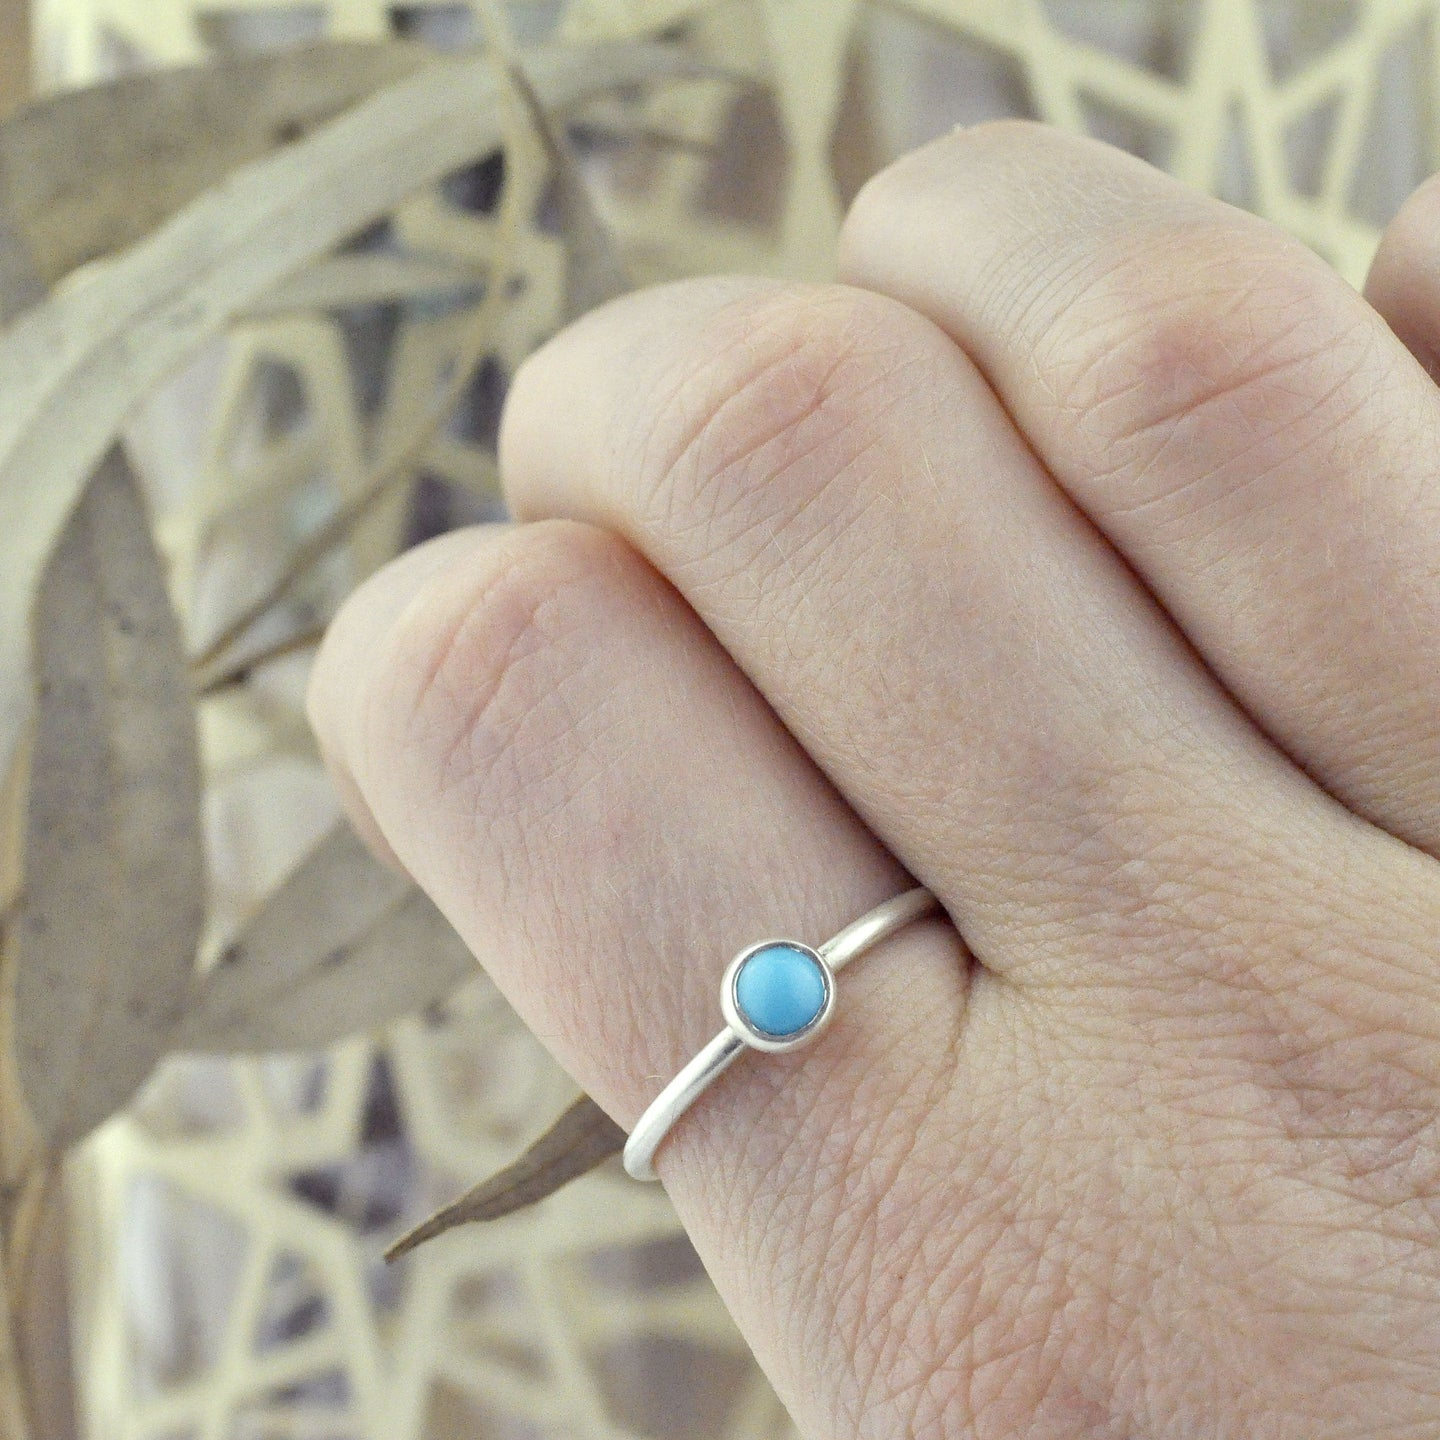 Turquoise sterling silver stacking ring.